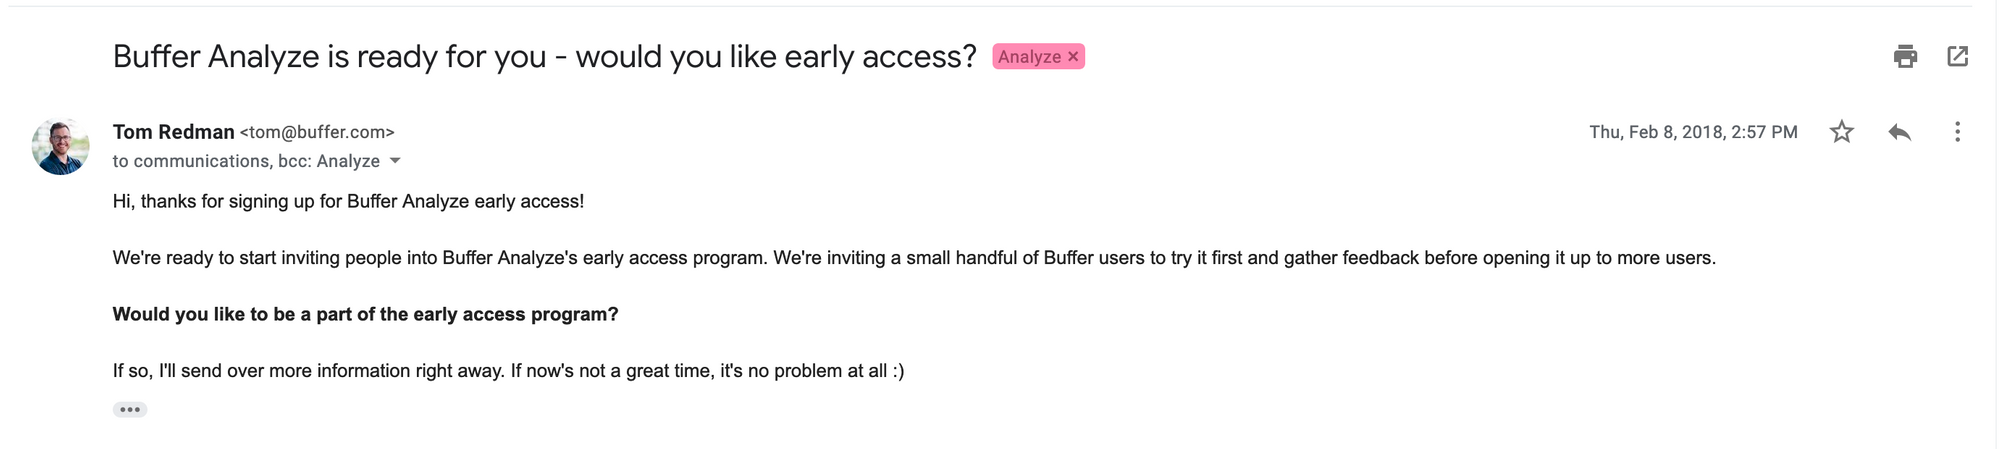 Analyze Early Access Email - Short